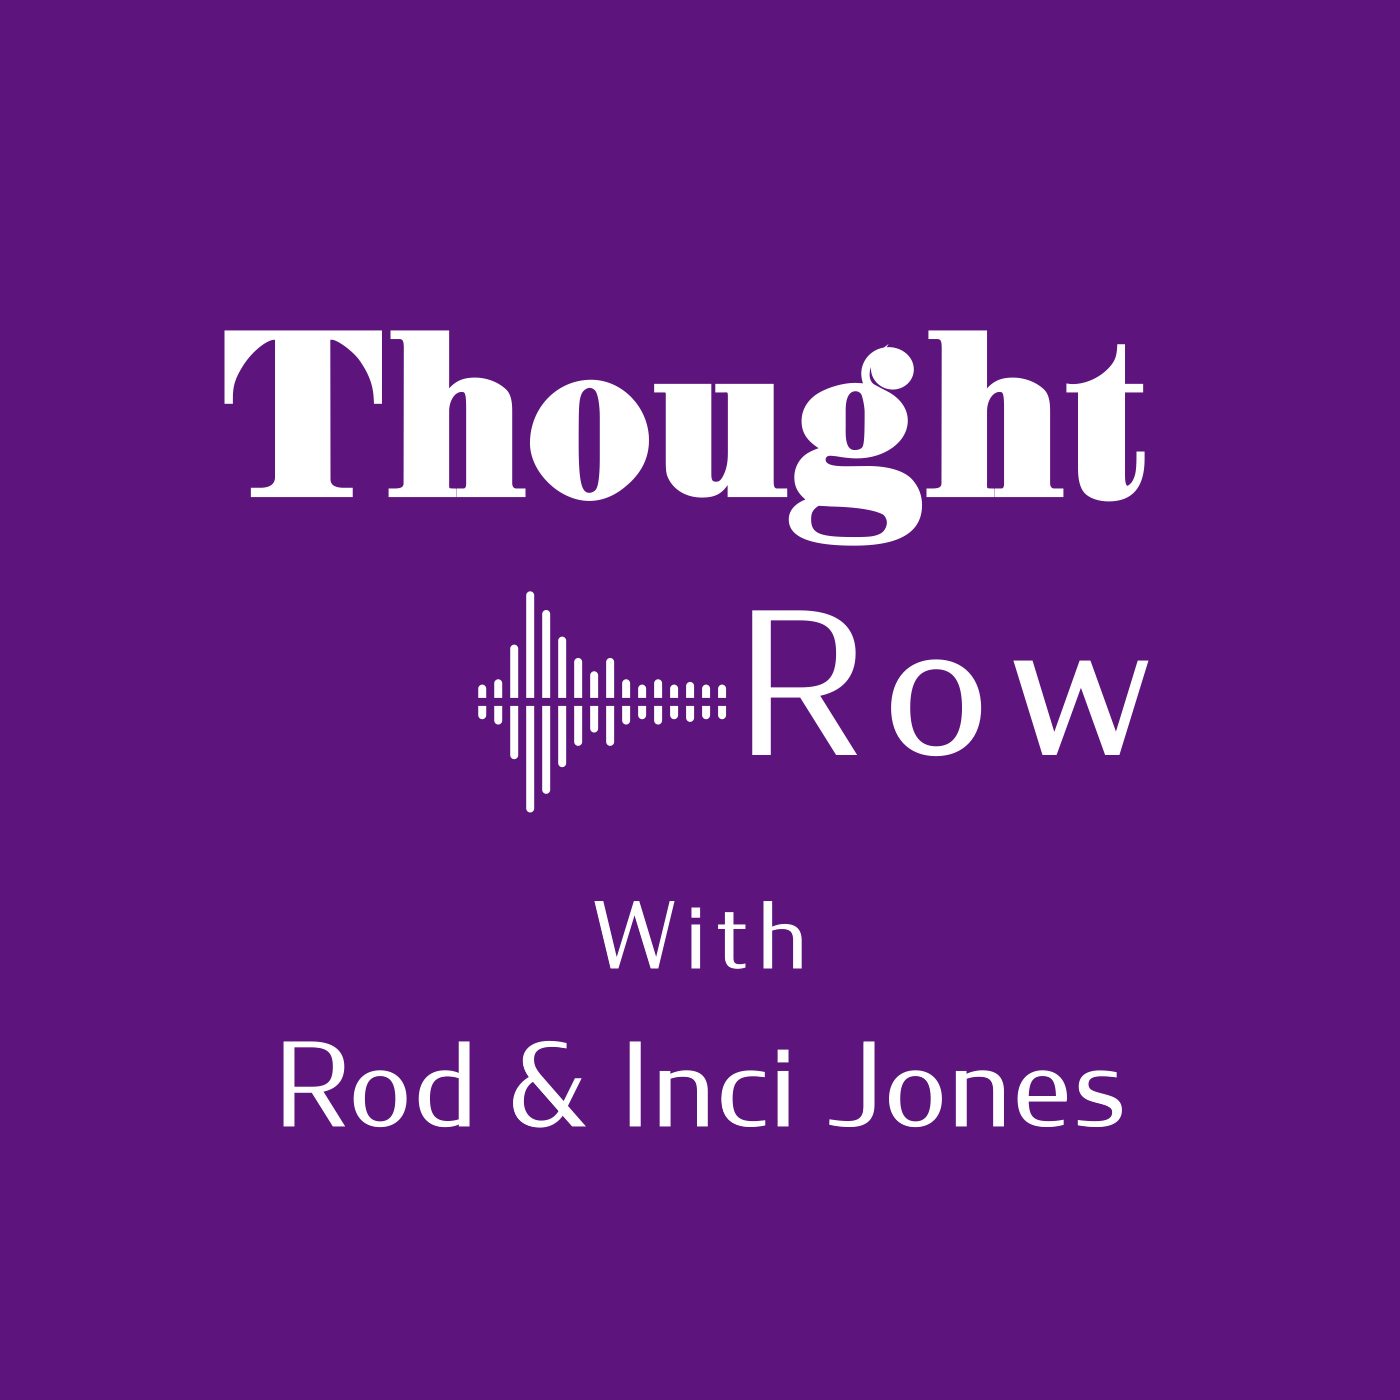 Thought Row